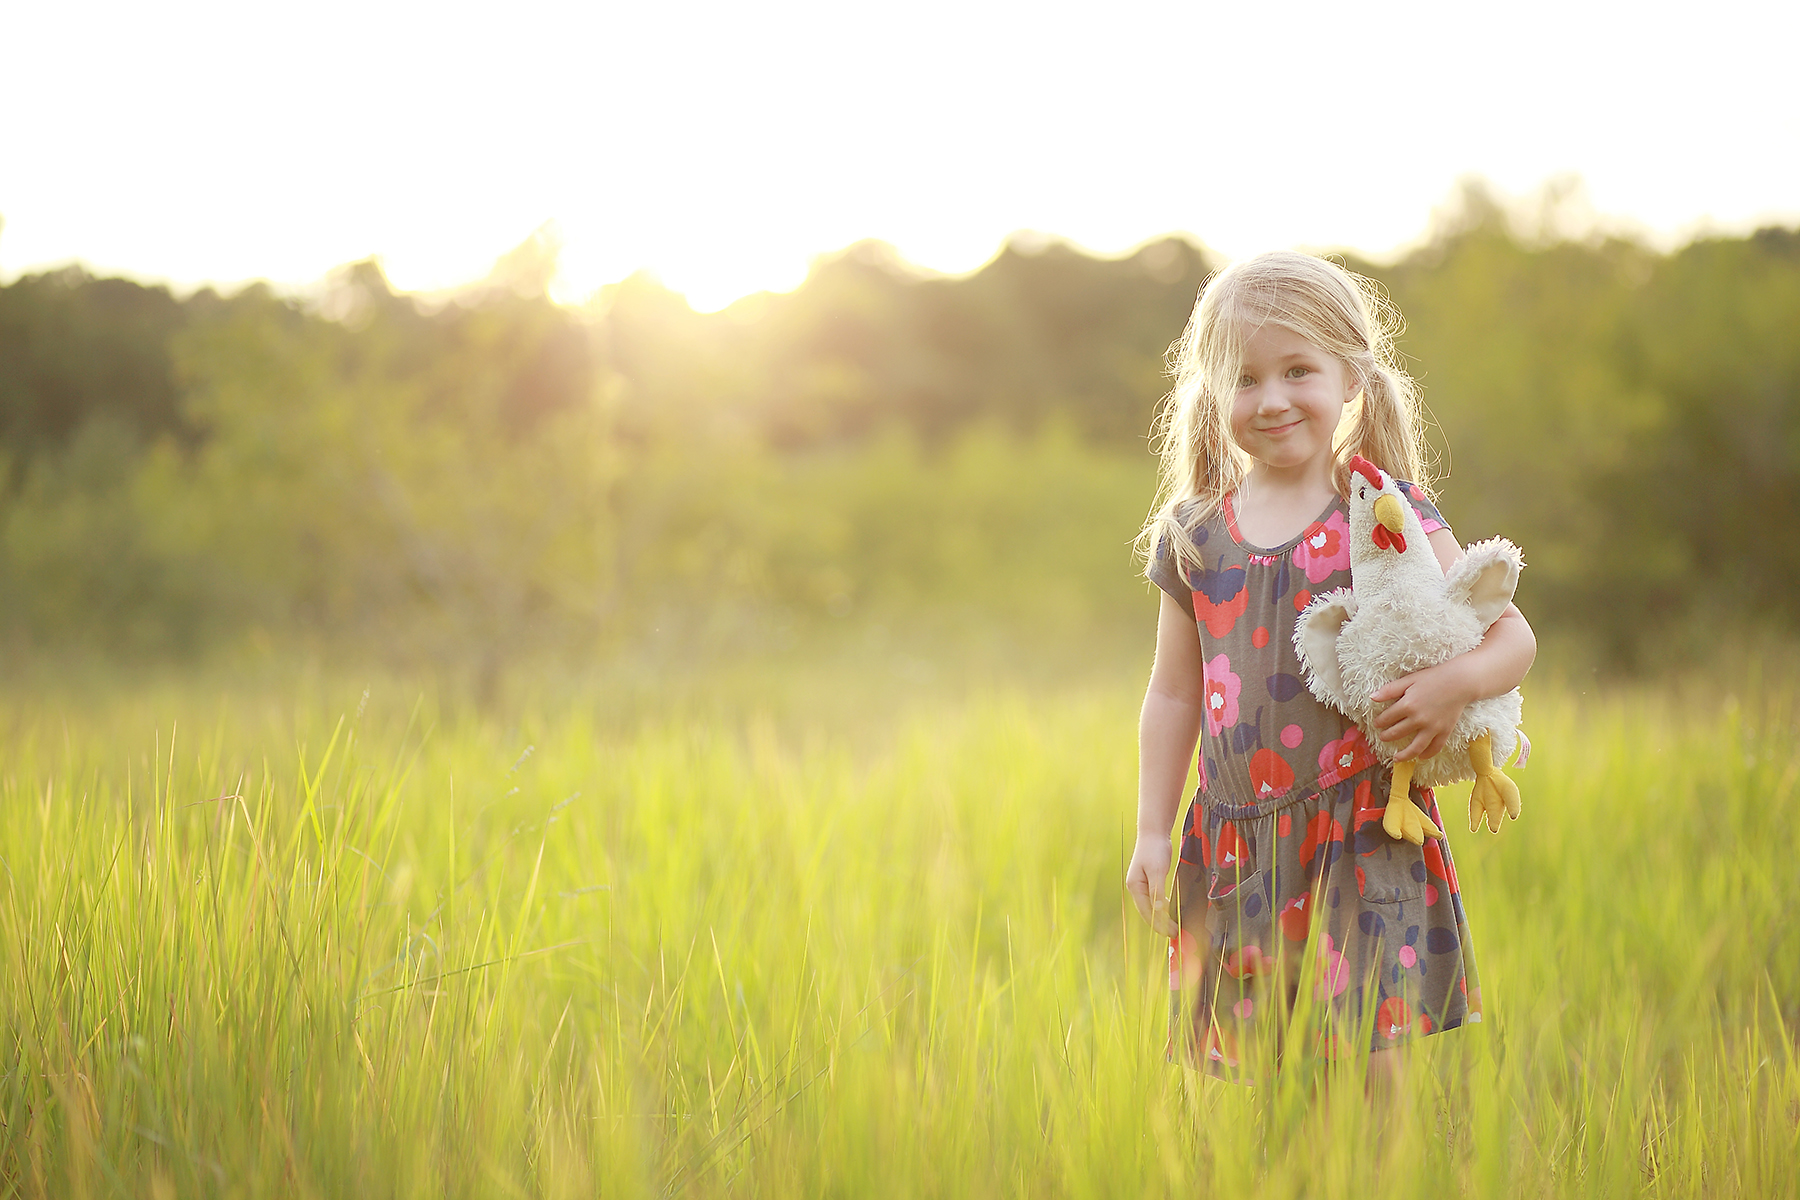 girl holding a stuffed chicken toy by Liz Behm